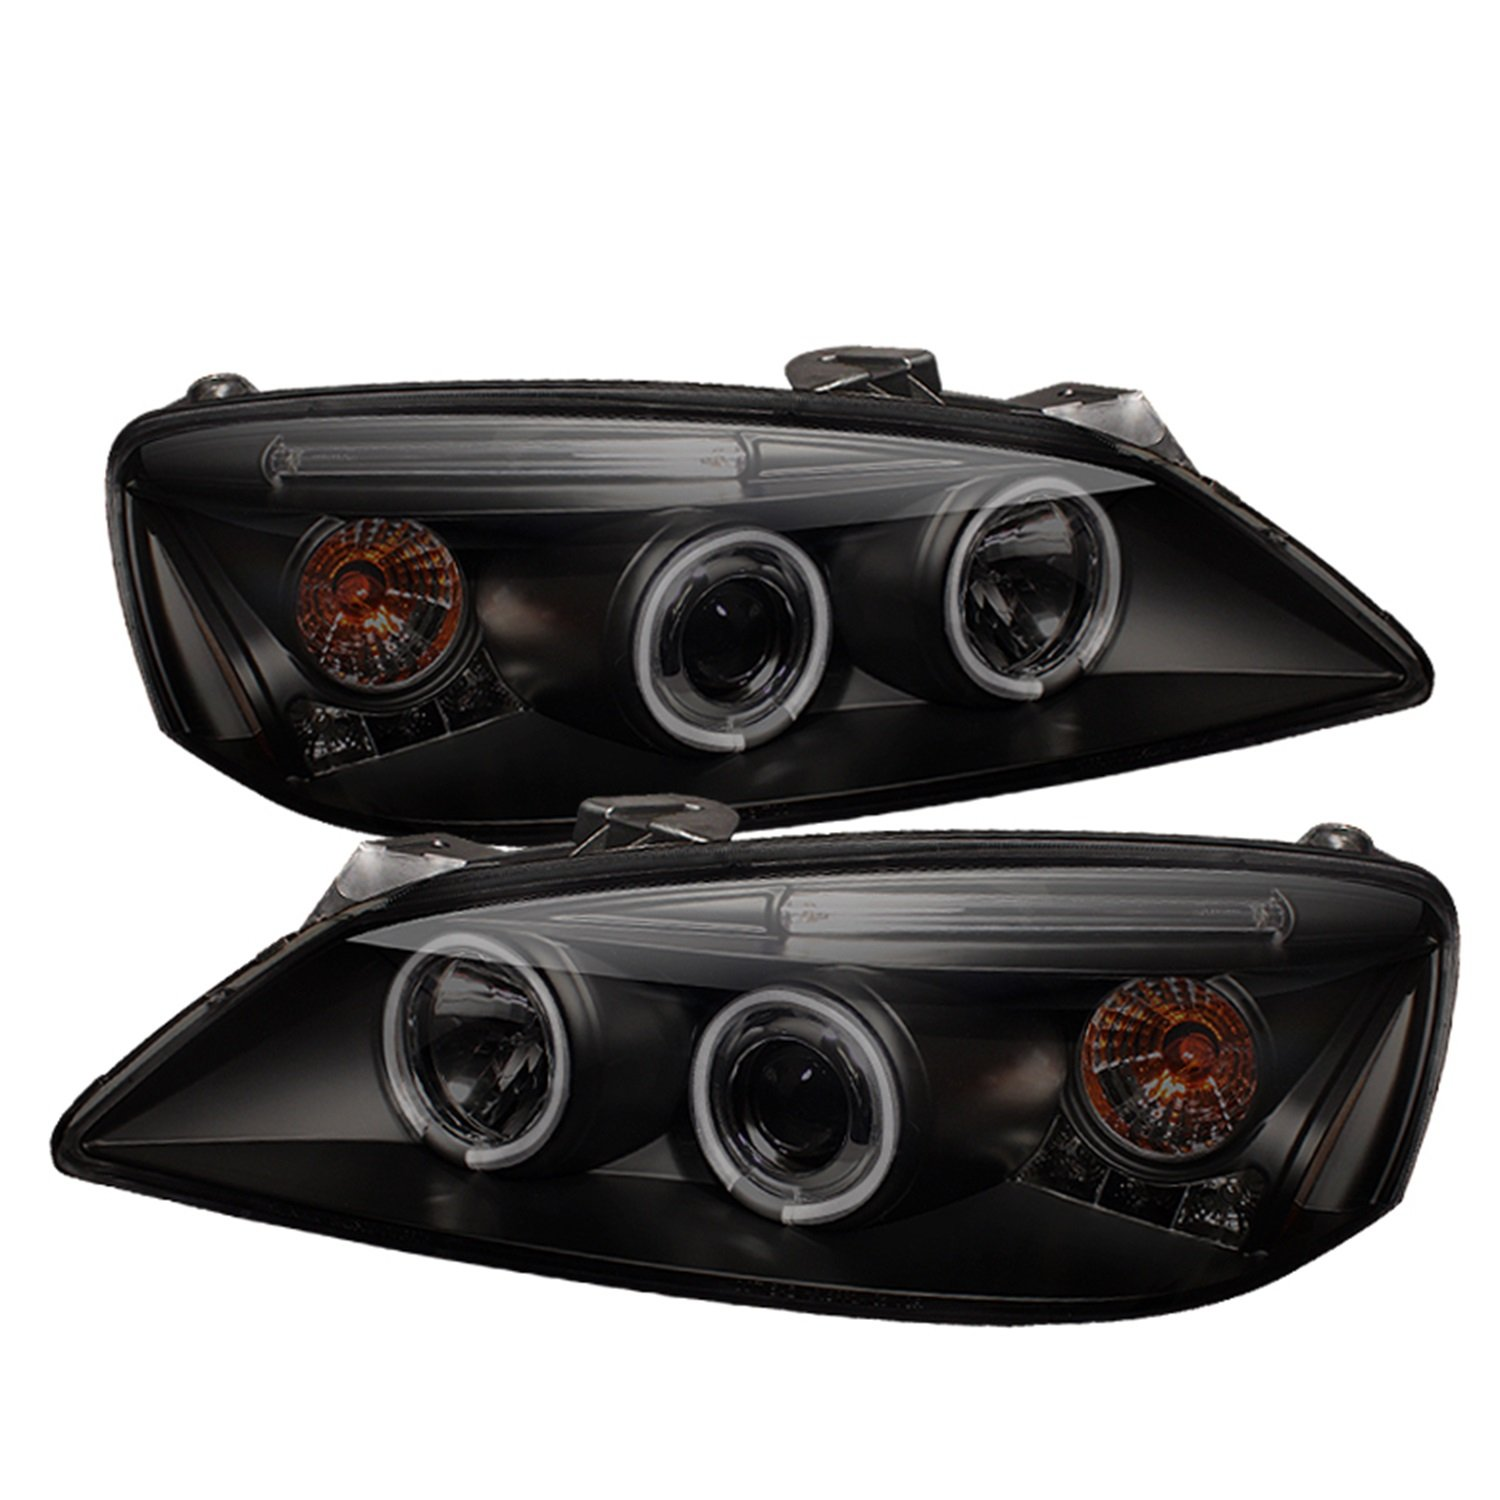 71RgfSQ1sWL._SL1500_ amazon com spyder auto pontiac g6 black ccfl projector headlight how to replace headlight wiring harness pontiac g6 at gsmportal.co